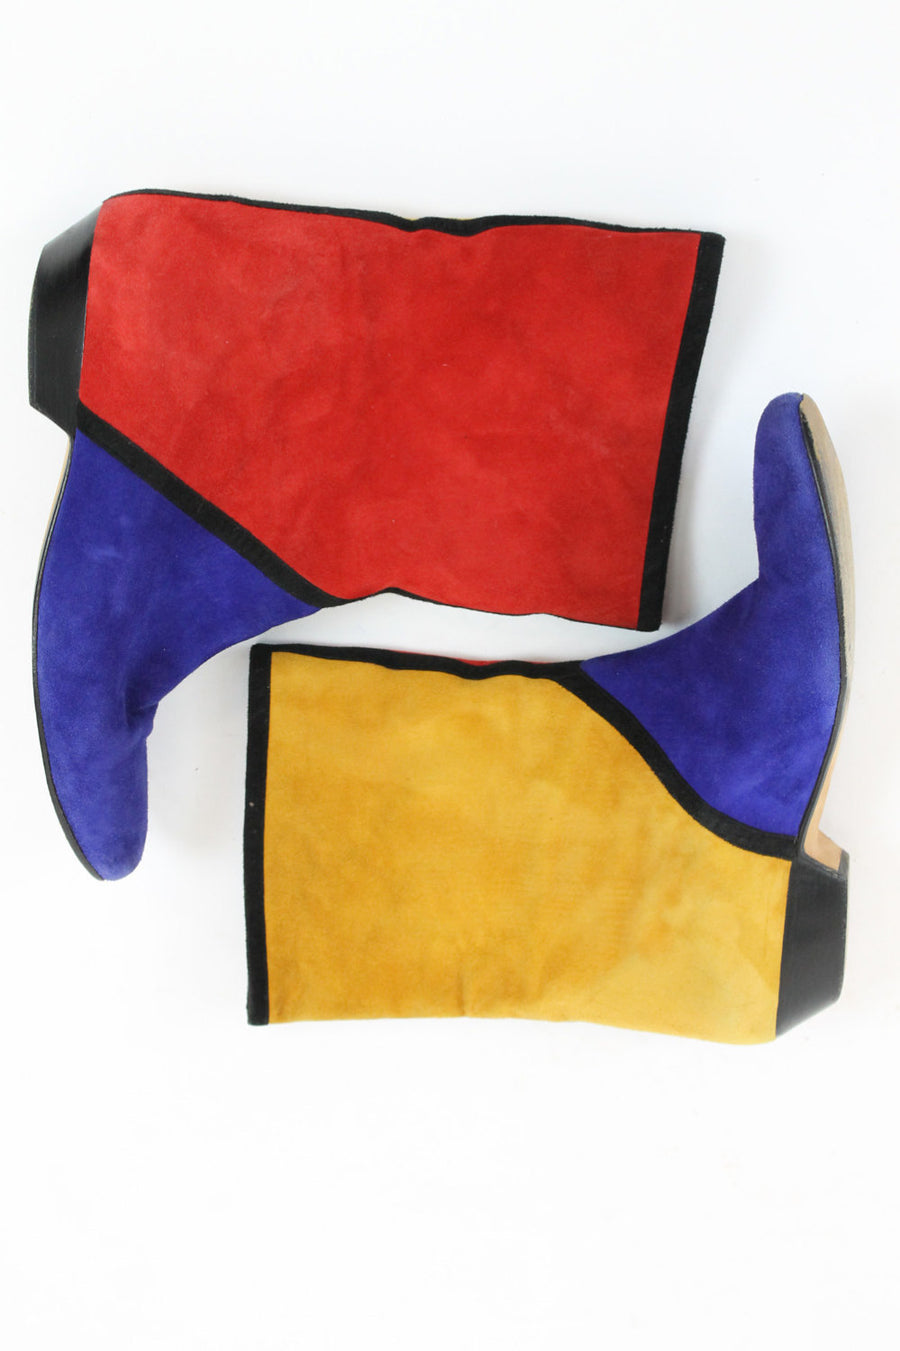 1980s Andrea Pfister boots  | size 6.5 | vintage colorblock mod ankle boots